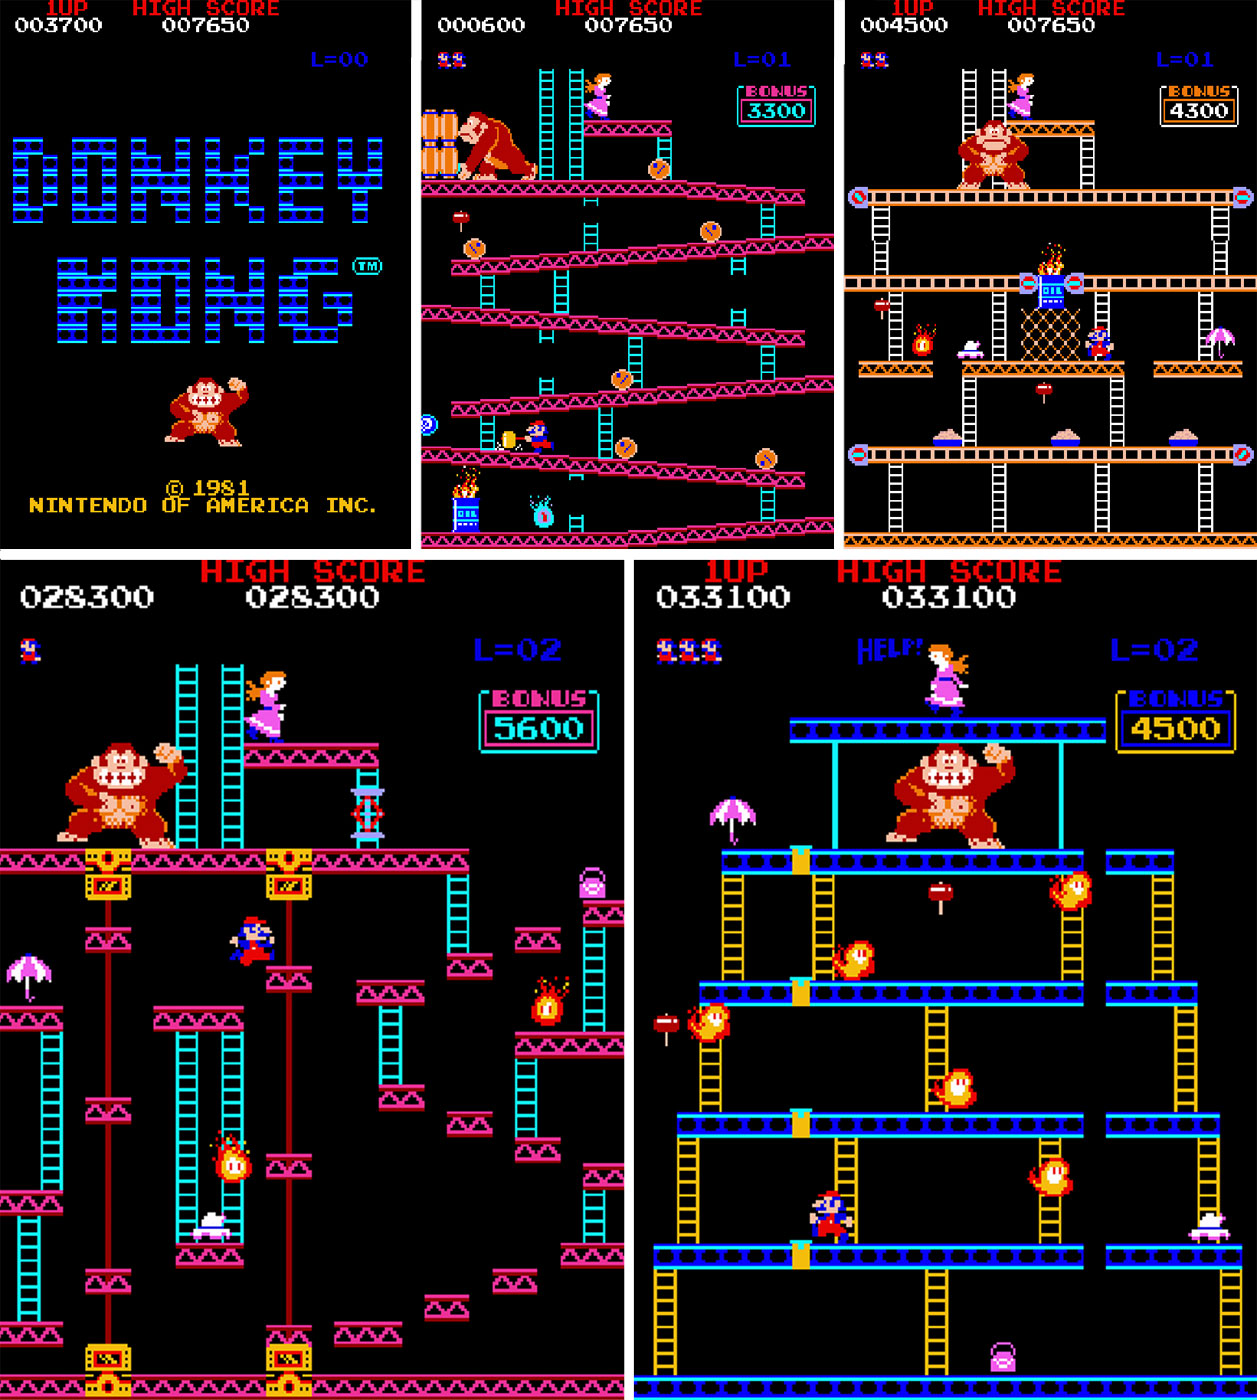 Hamster releases the original arcade version of Donkey Kong